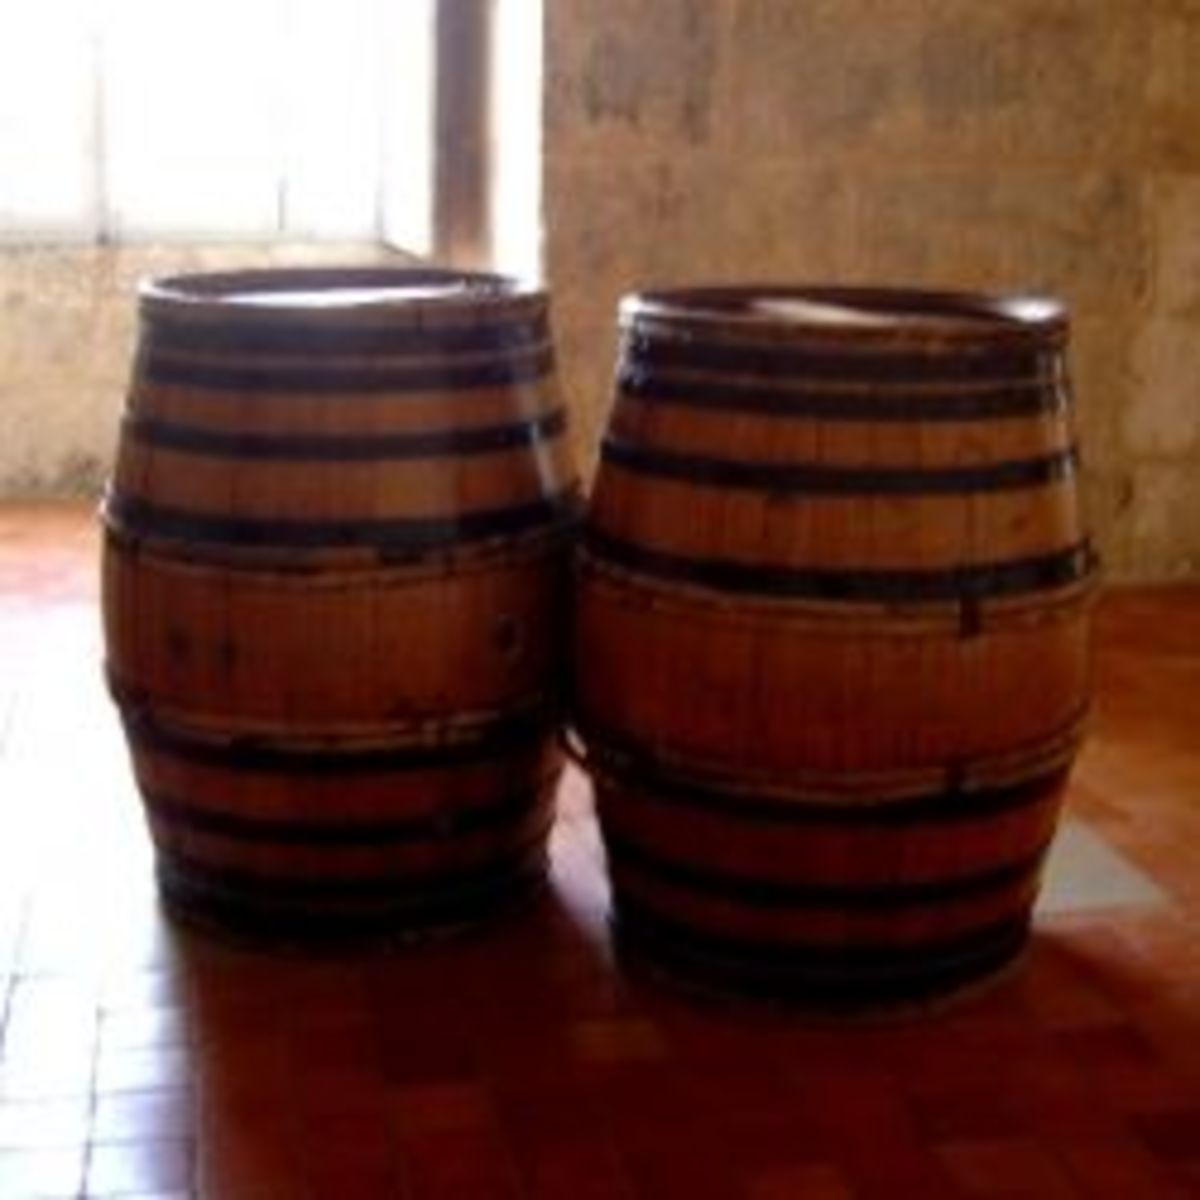 Oak Barrels in Cognac, France